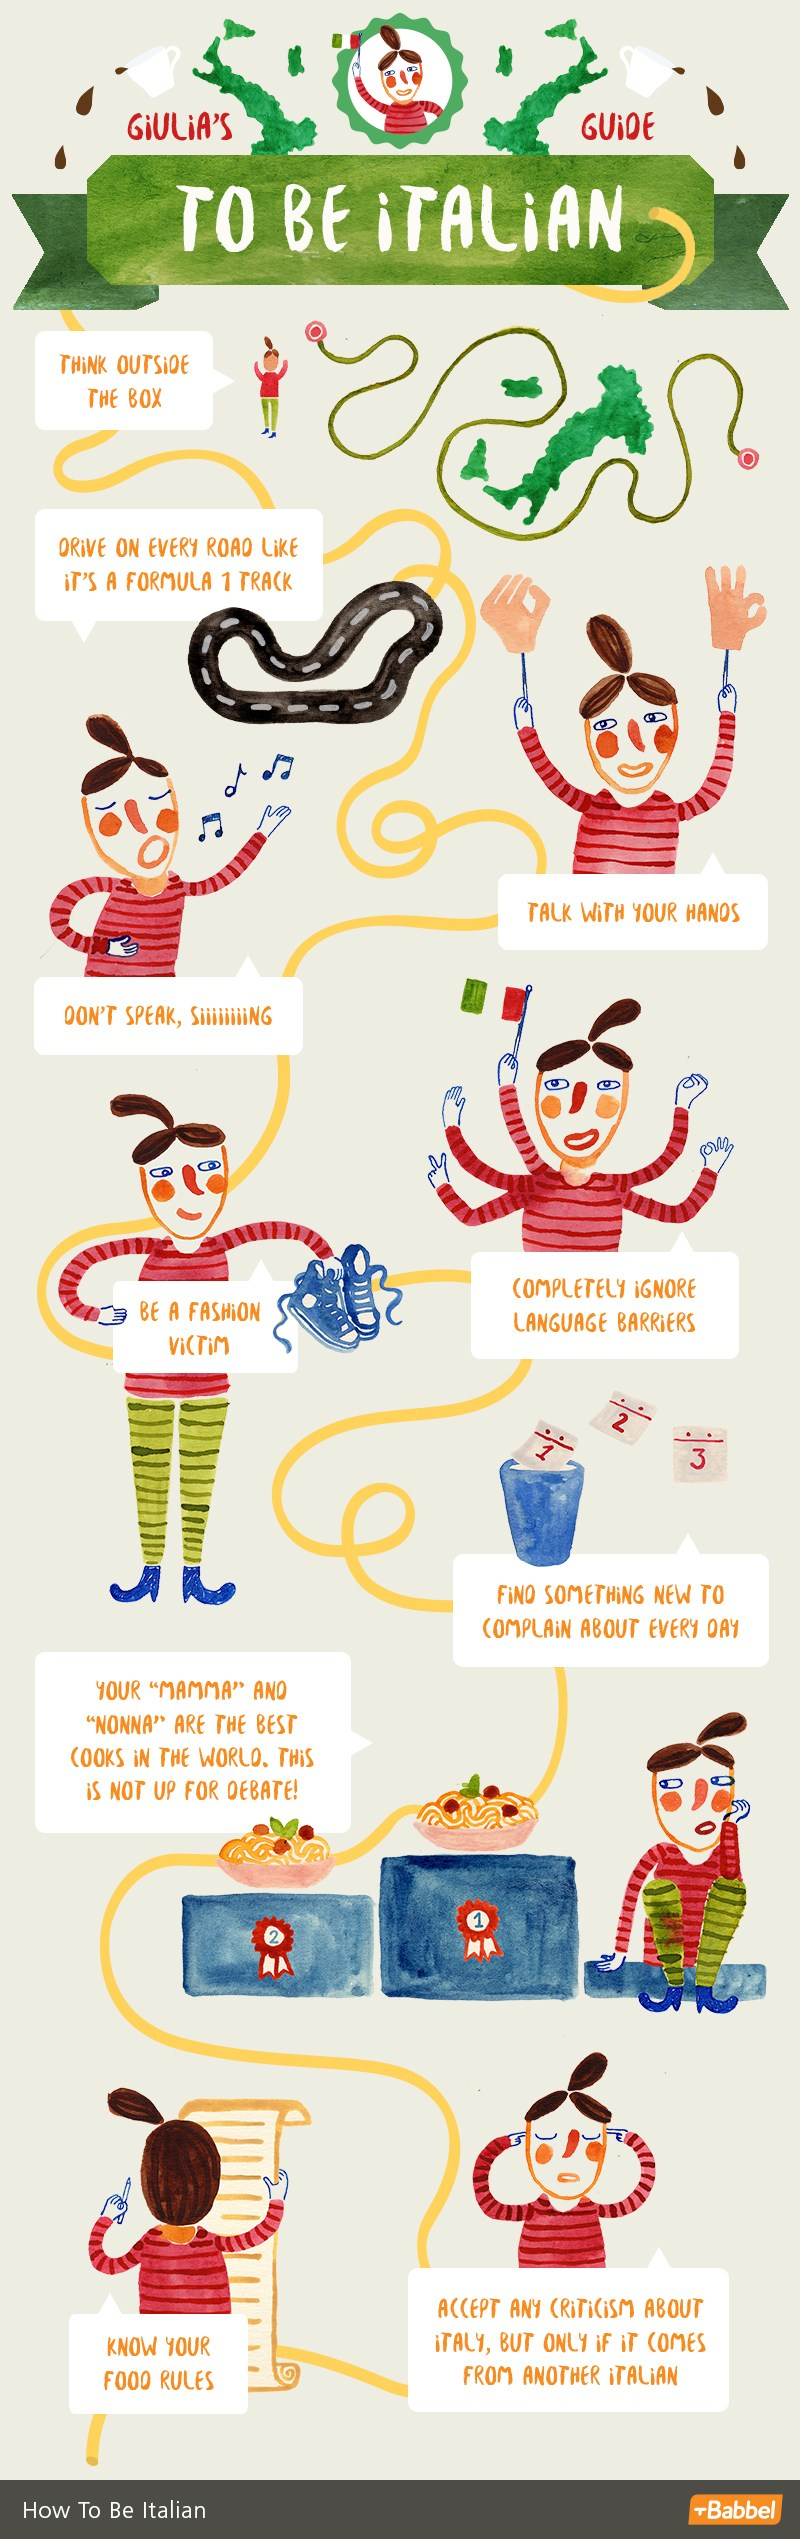 How to be Italian infographic, learn the Italian lifestyle flowchart